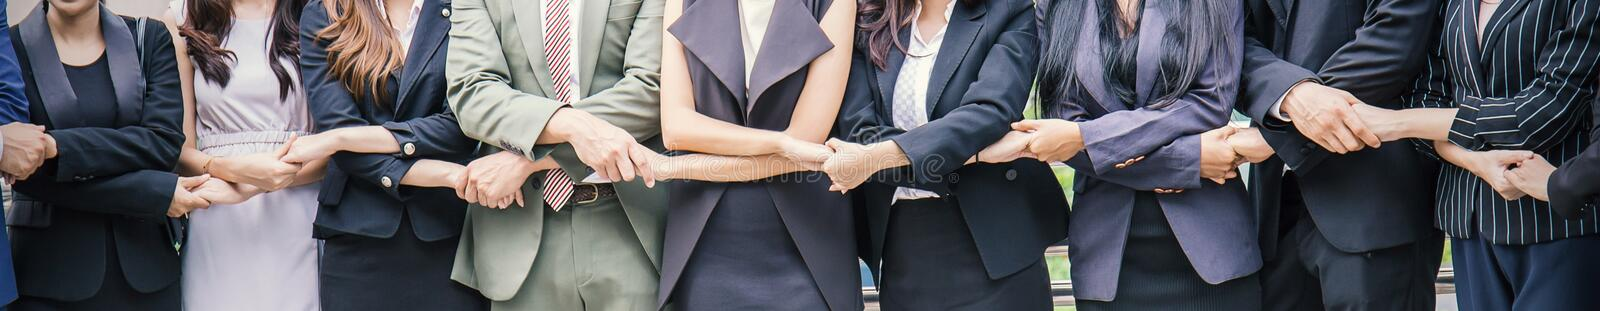 Creative team putting their hands together, business people teamwork banner concept. stock images